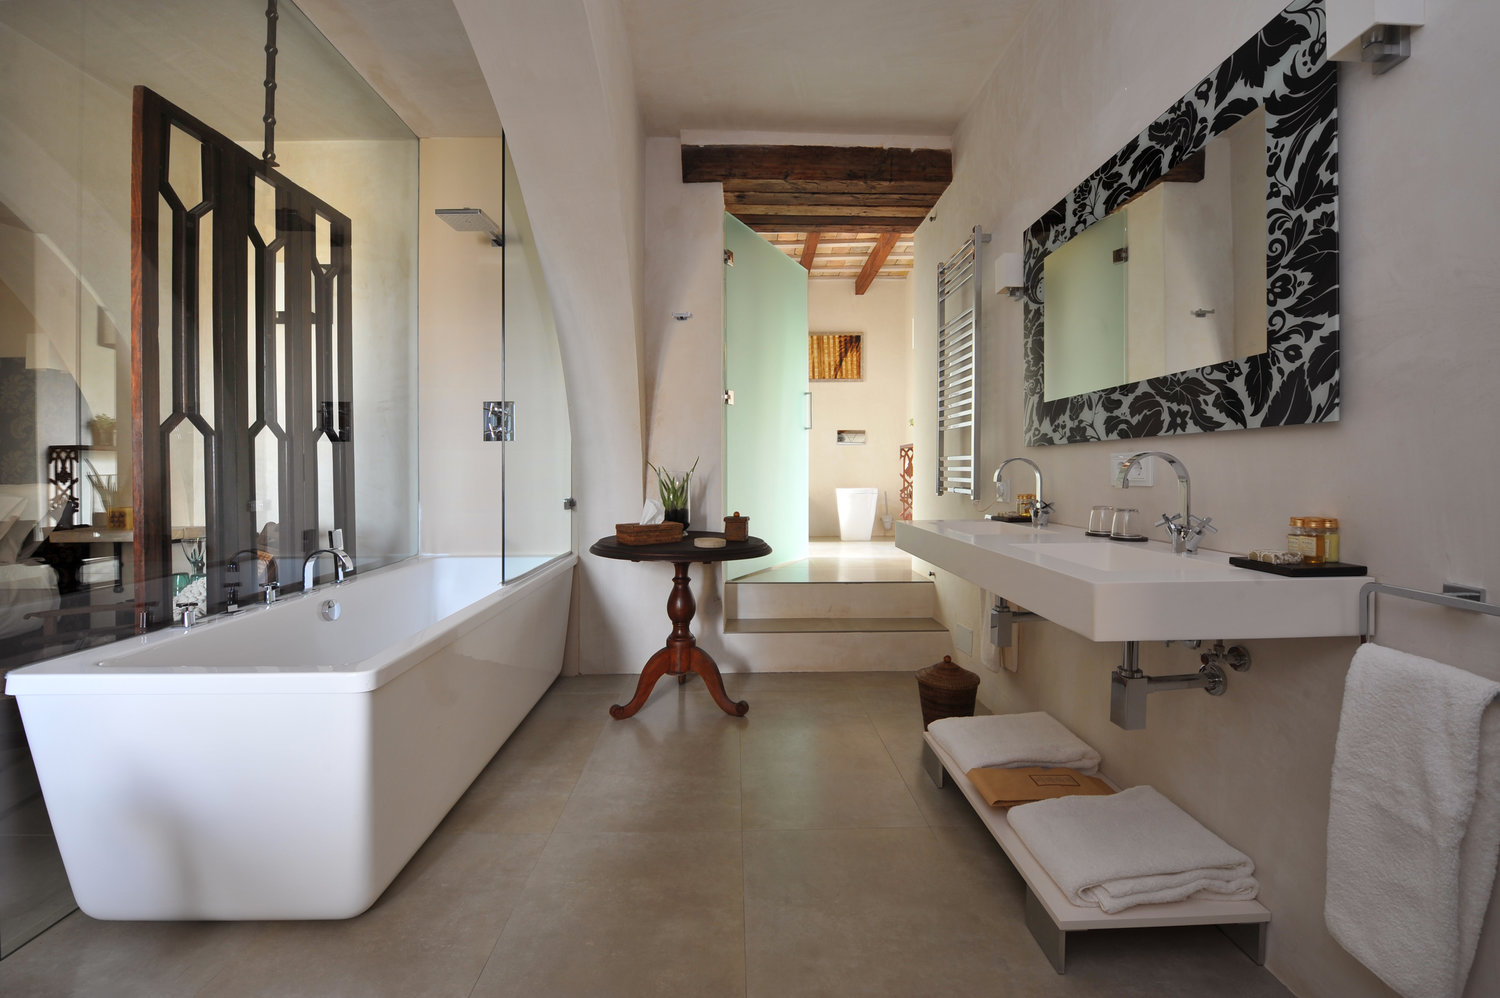 The elegant design bathroom in the superior room. In these rooms you can expect free high speed WiFi, TV, air conditioning and floor heating.